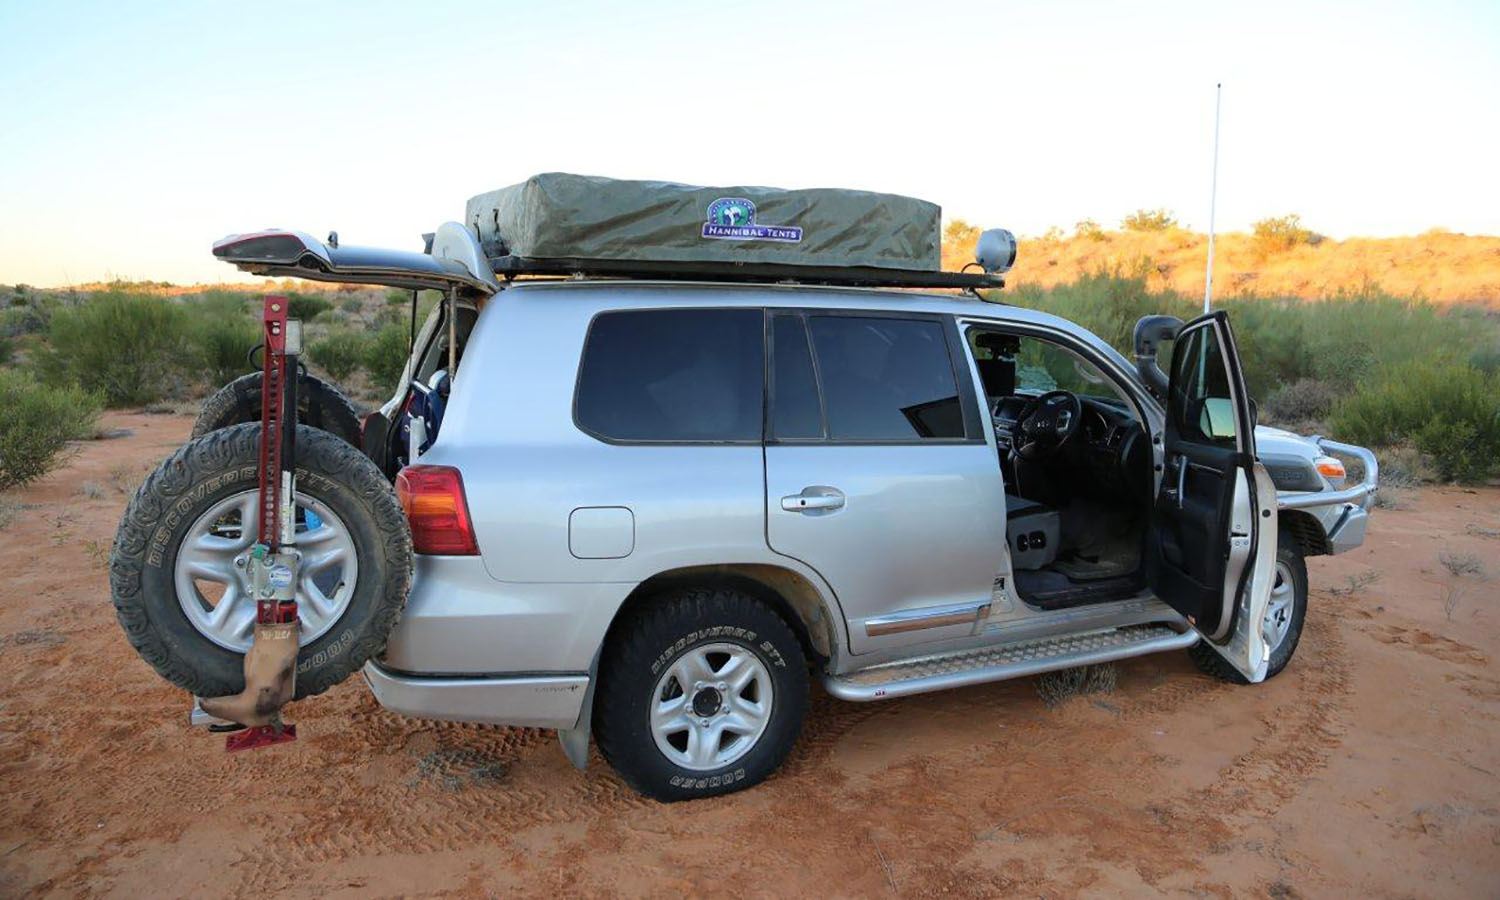 Hannibal Roof Racks for 200 Series Toyota Landcruiser